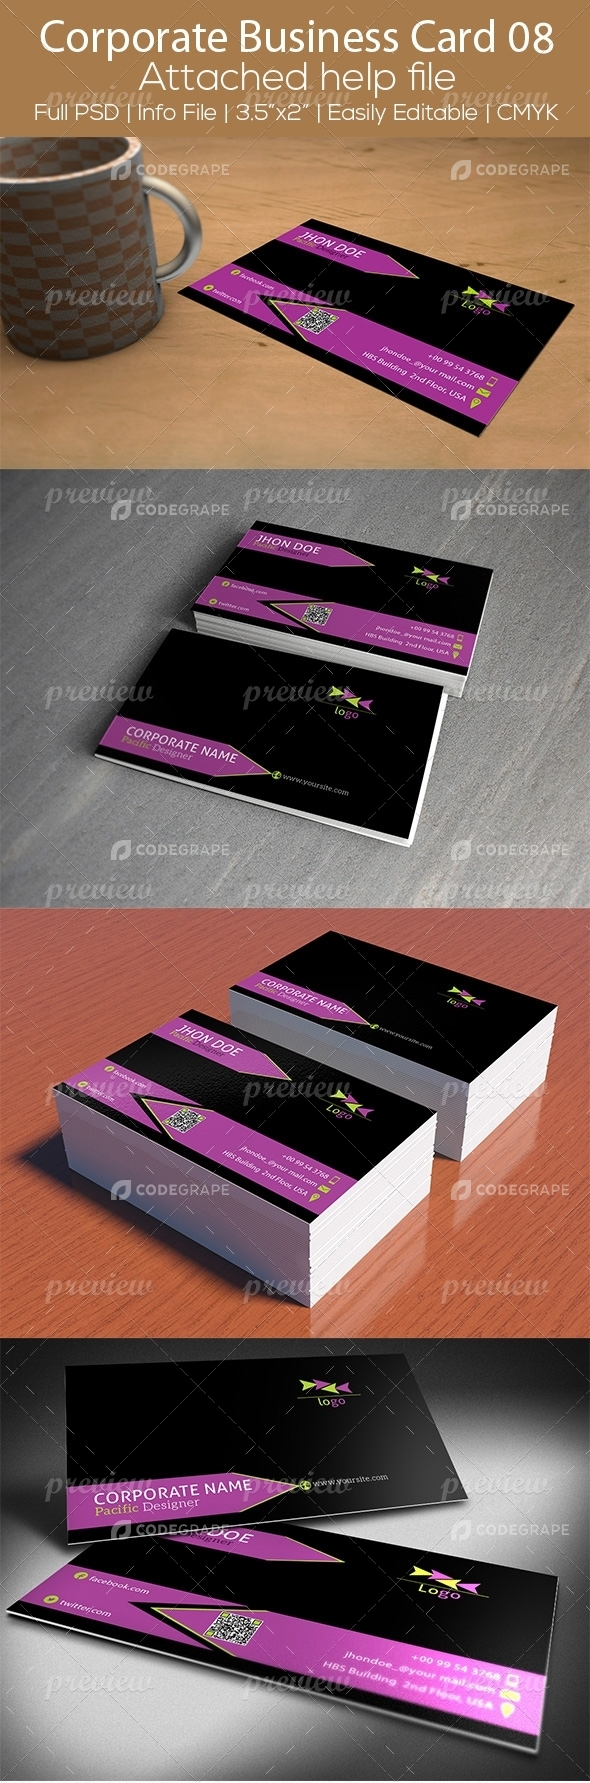 Corporate Business Card 08